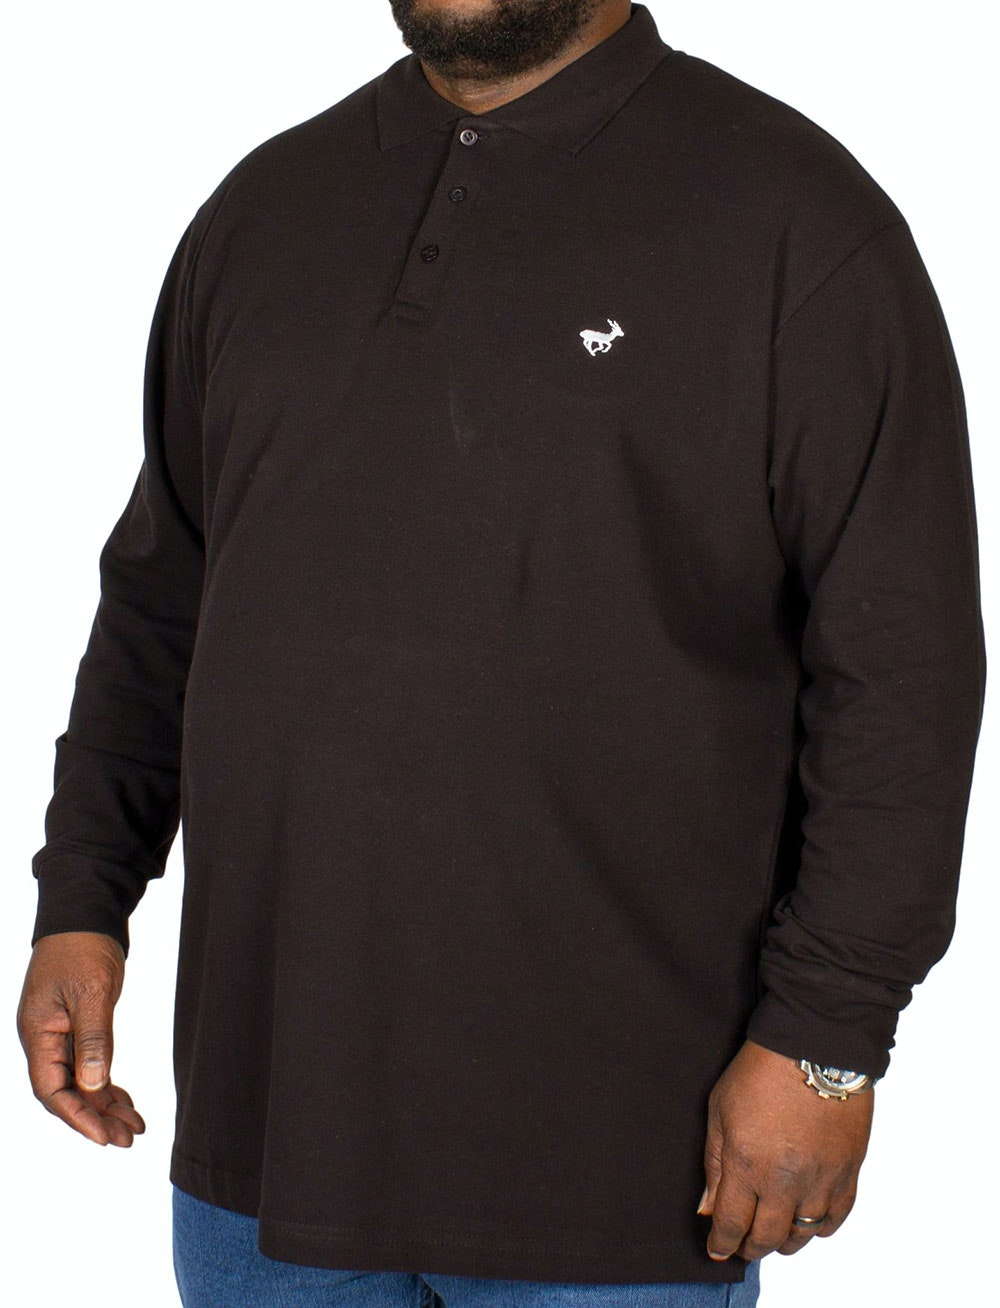 Bigdude Embroidered Long Sleeve Polo Shirt Black